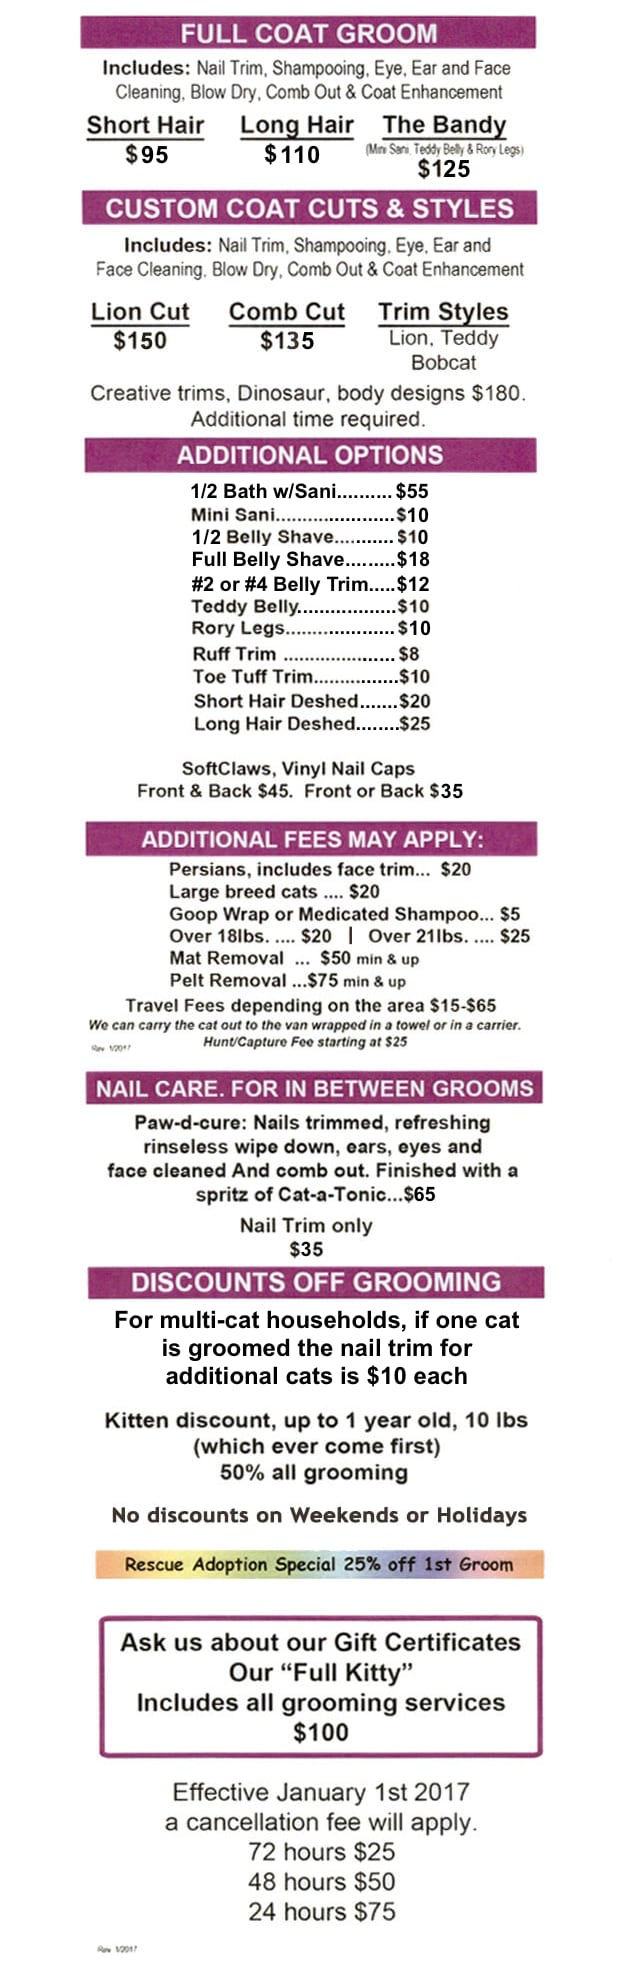 Services offered at Gabi Kat Grooming